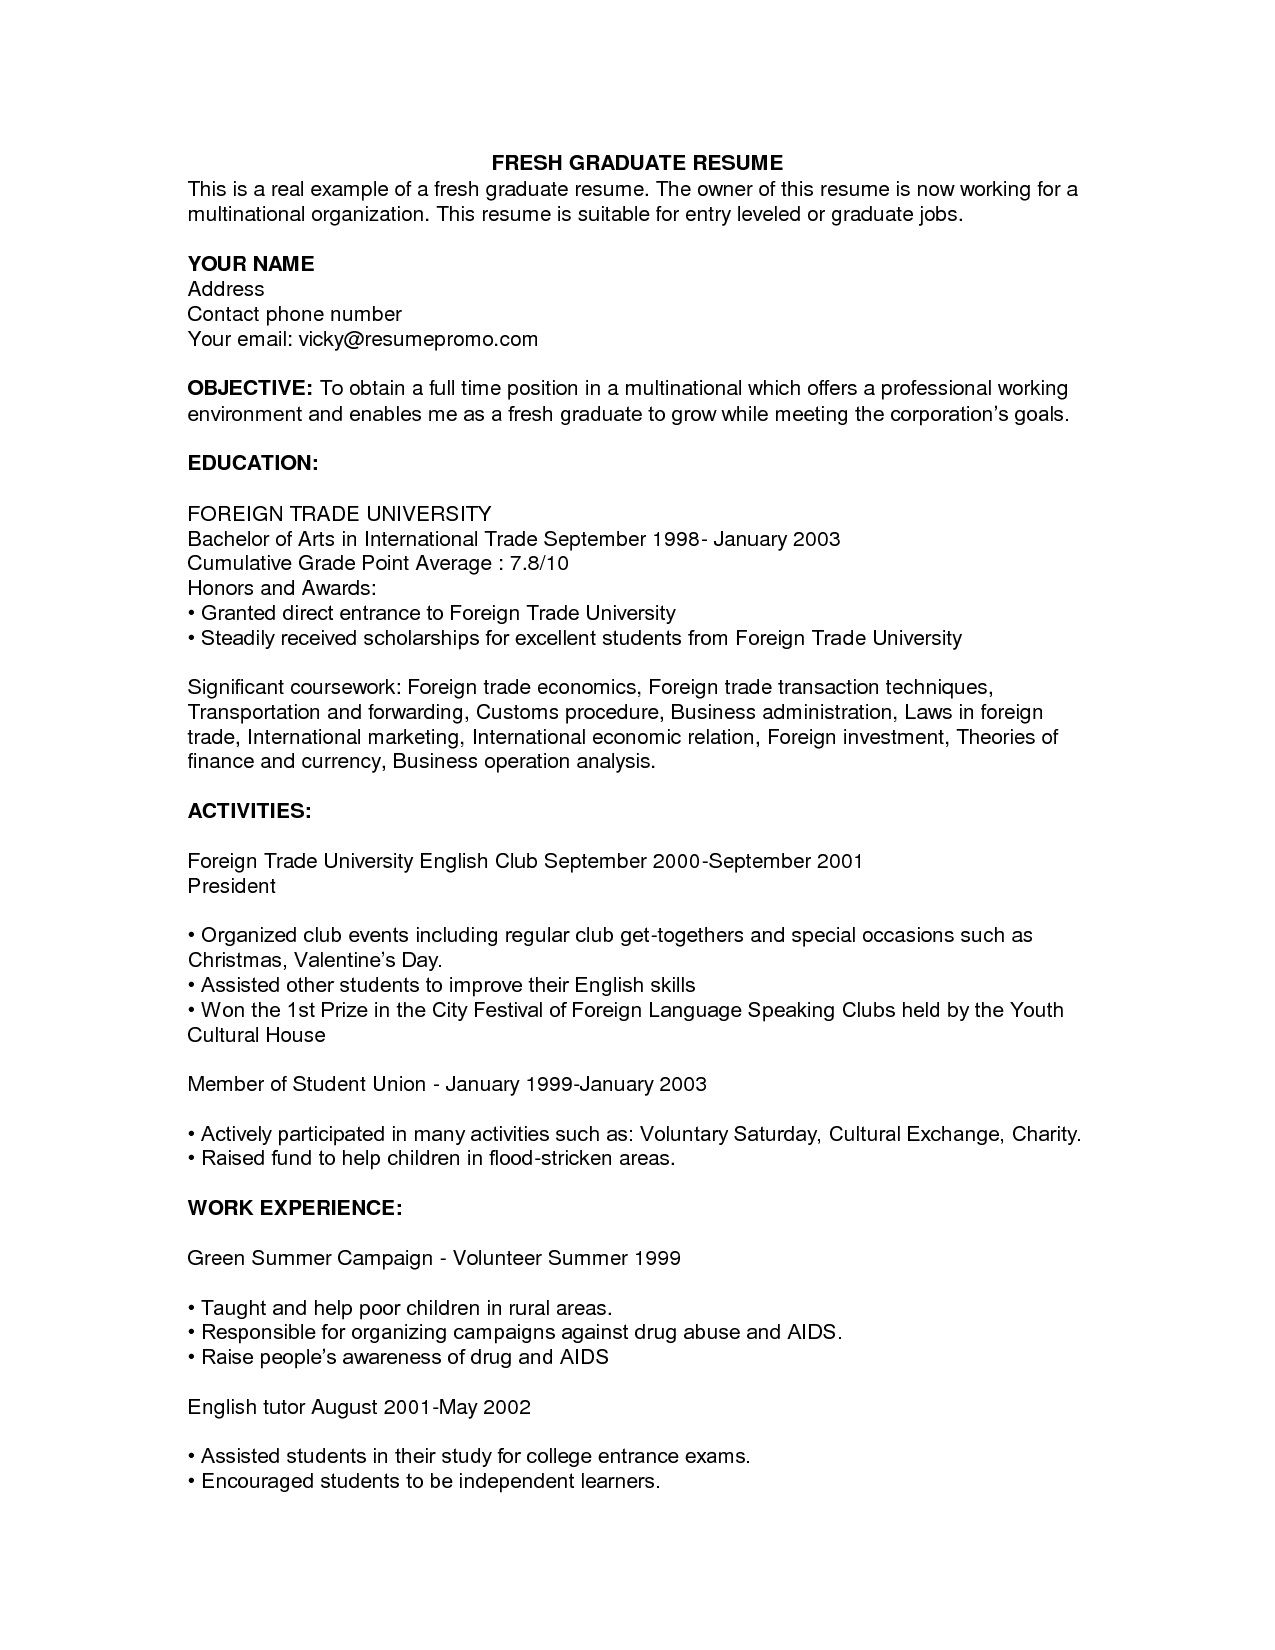 Resume For A Job Example Of Resume For Fresh Graduate  Httpjobresumesample